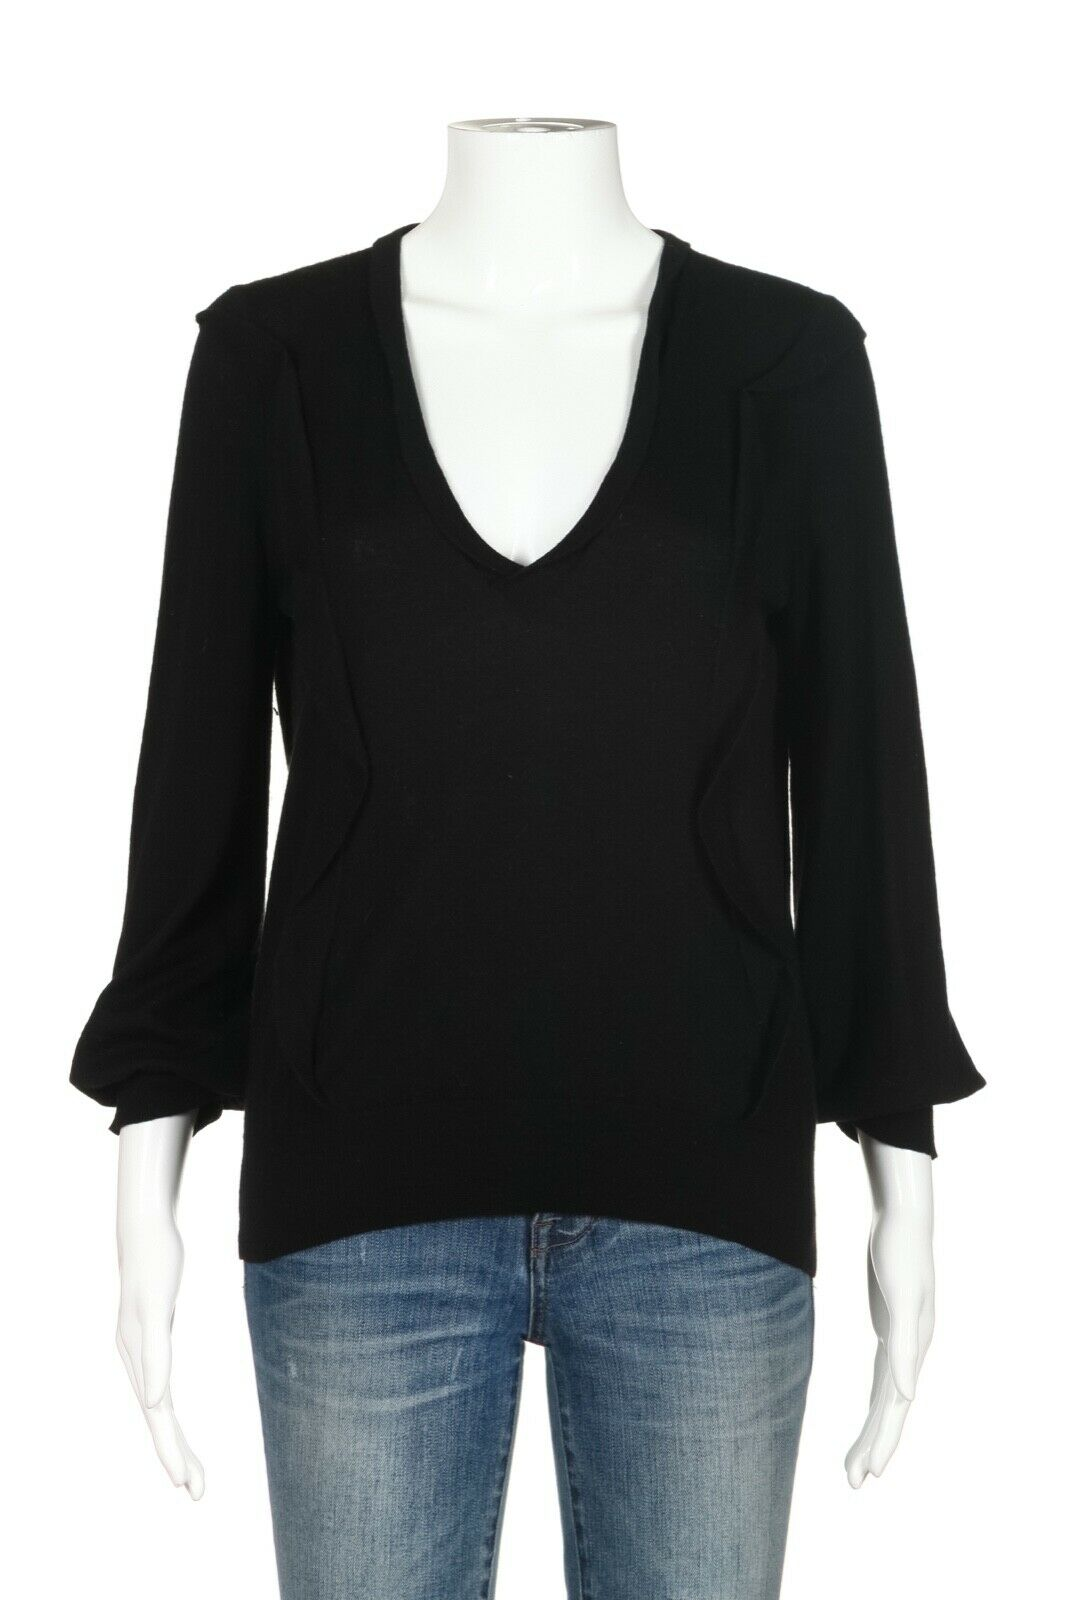 LOUIS VUITTON V-Neck 100% Cashmere Sweater Size M